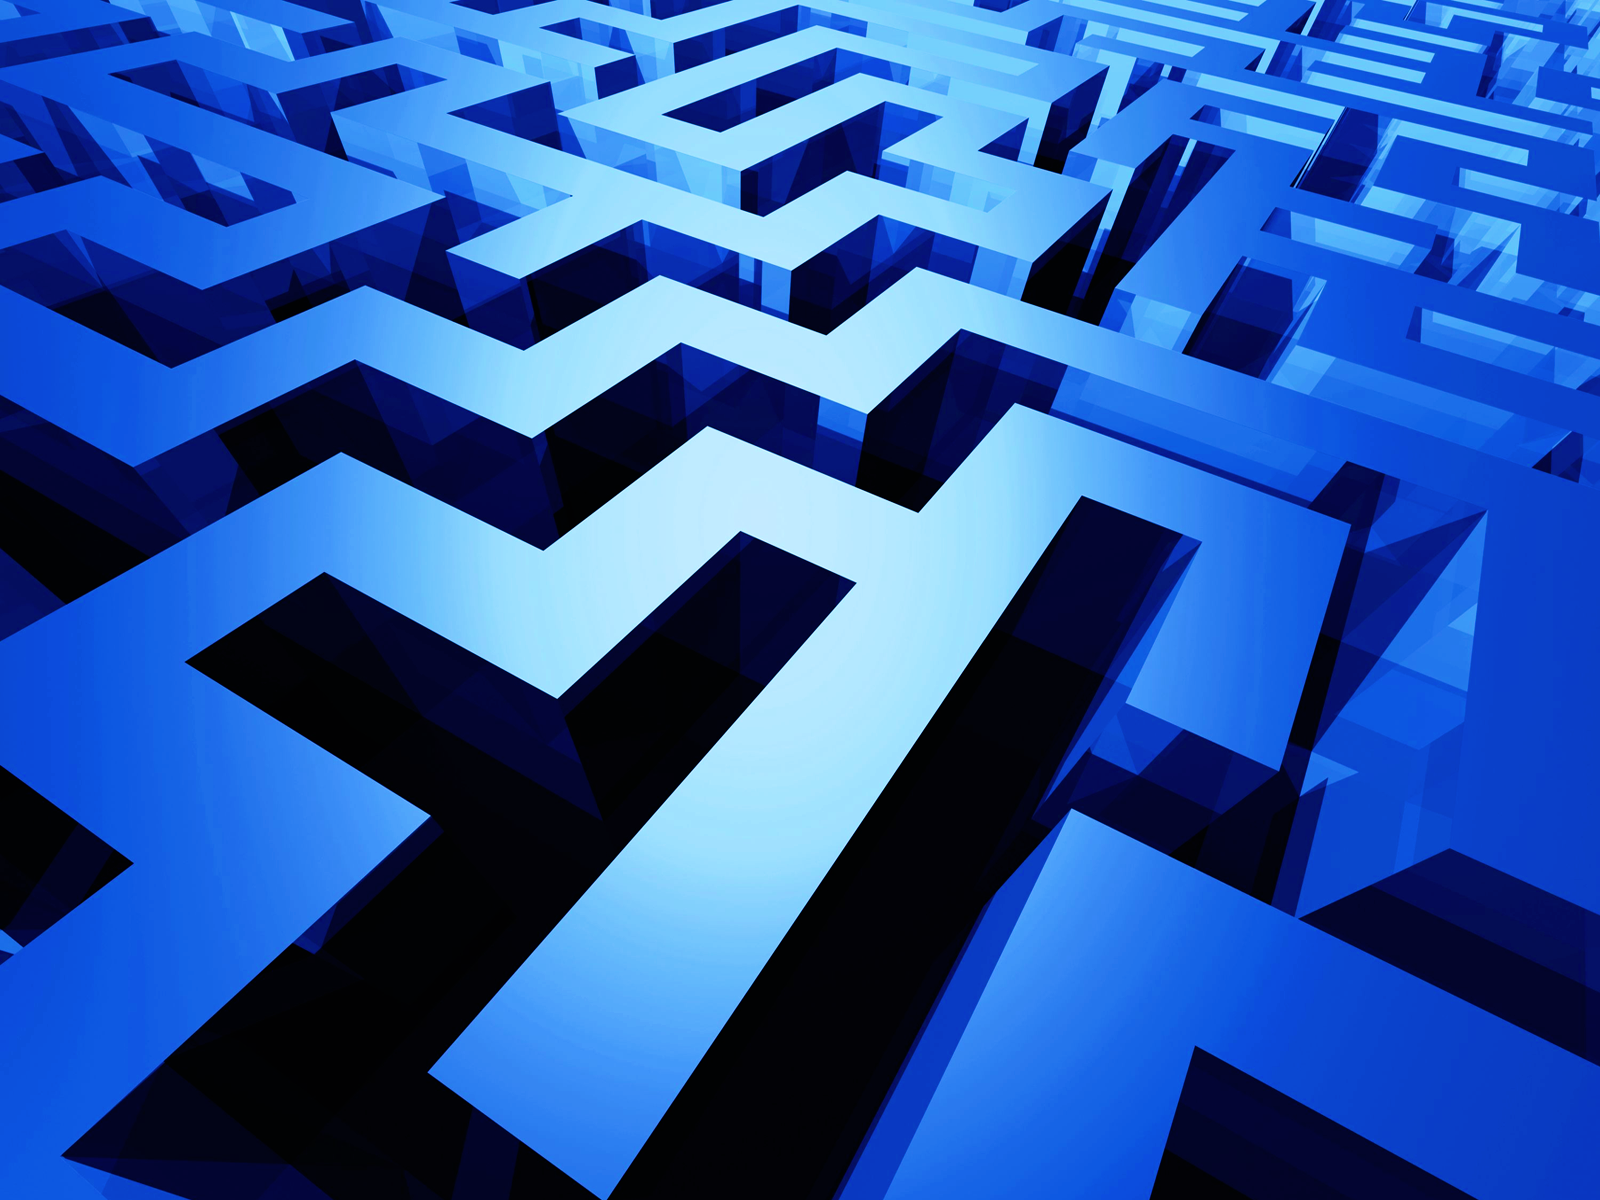 3d blue maze wallpaper 61185